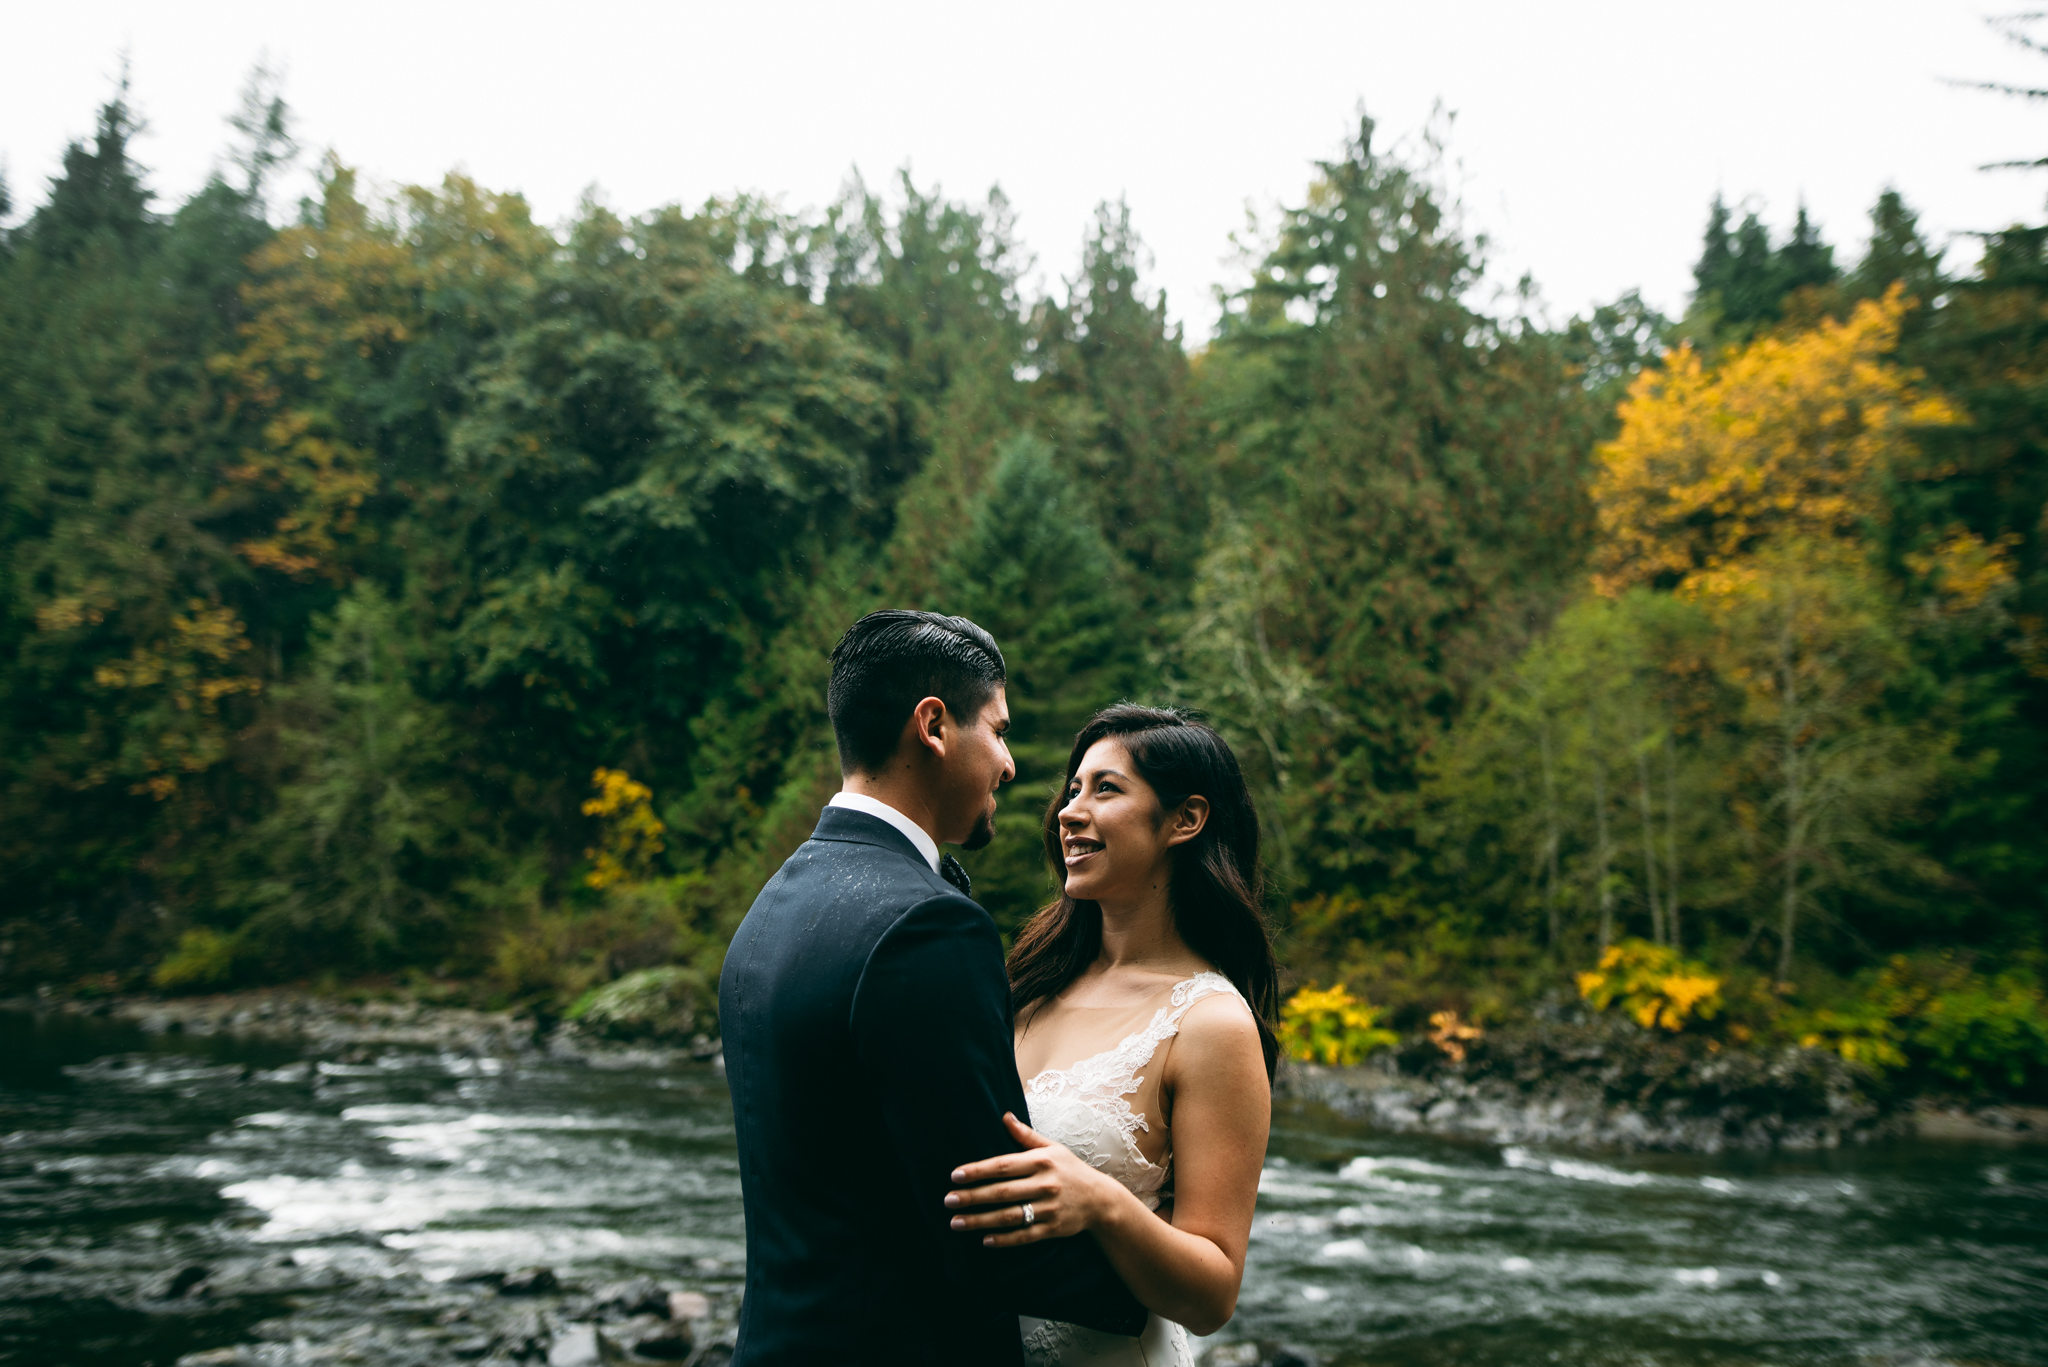 ©Isaiah & Taylor Photography - Los Angeles Wedding - Snoqualmie, Washington Honeymoon-015.jpg